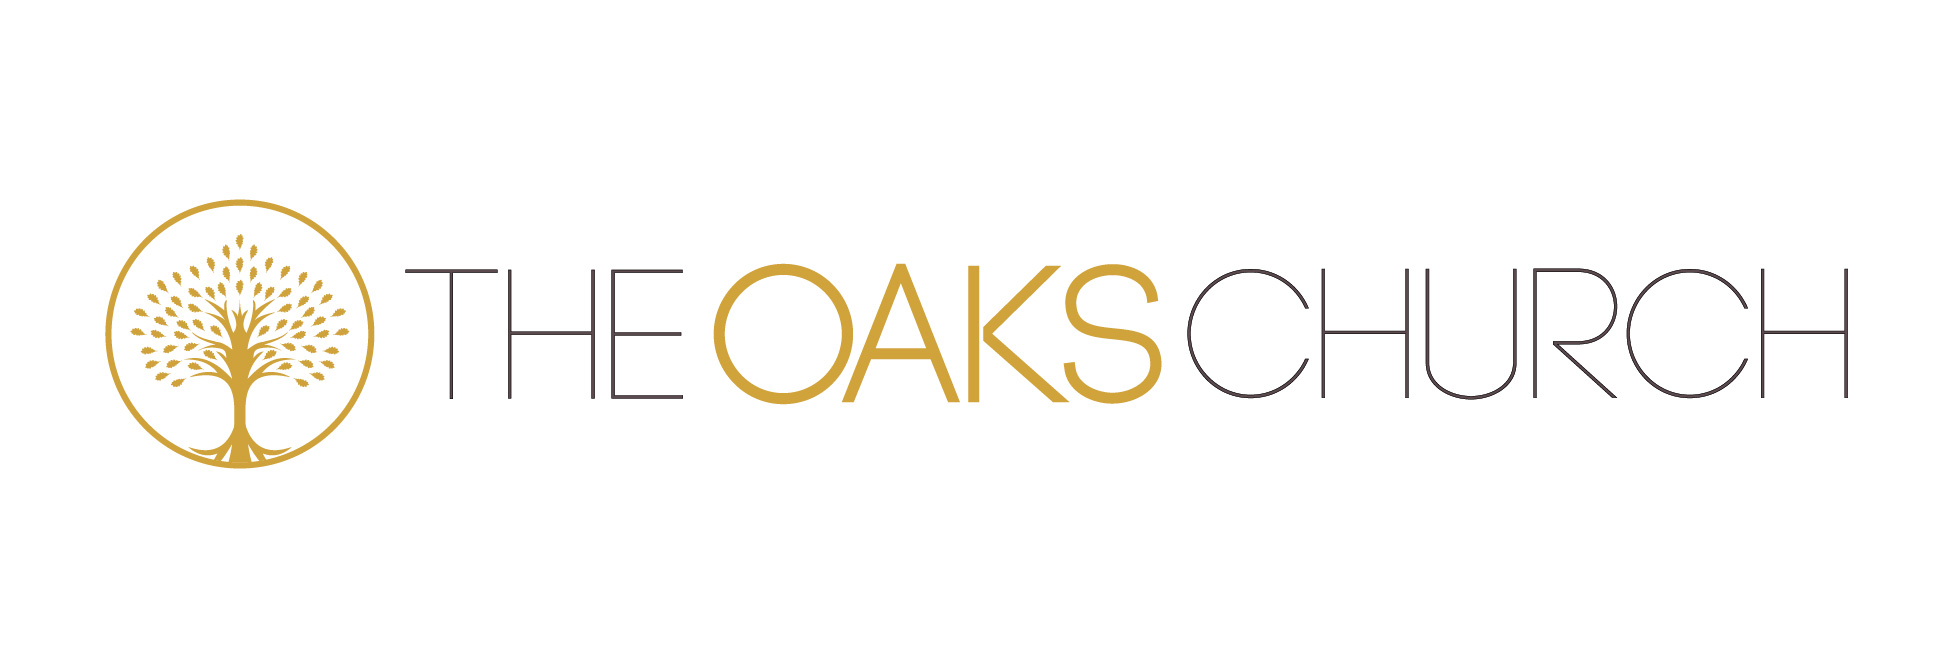 The-Oaks_Alt-Logo_06_Light.jpg